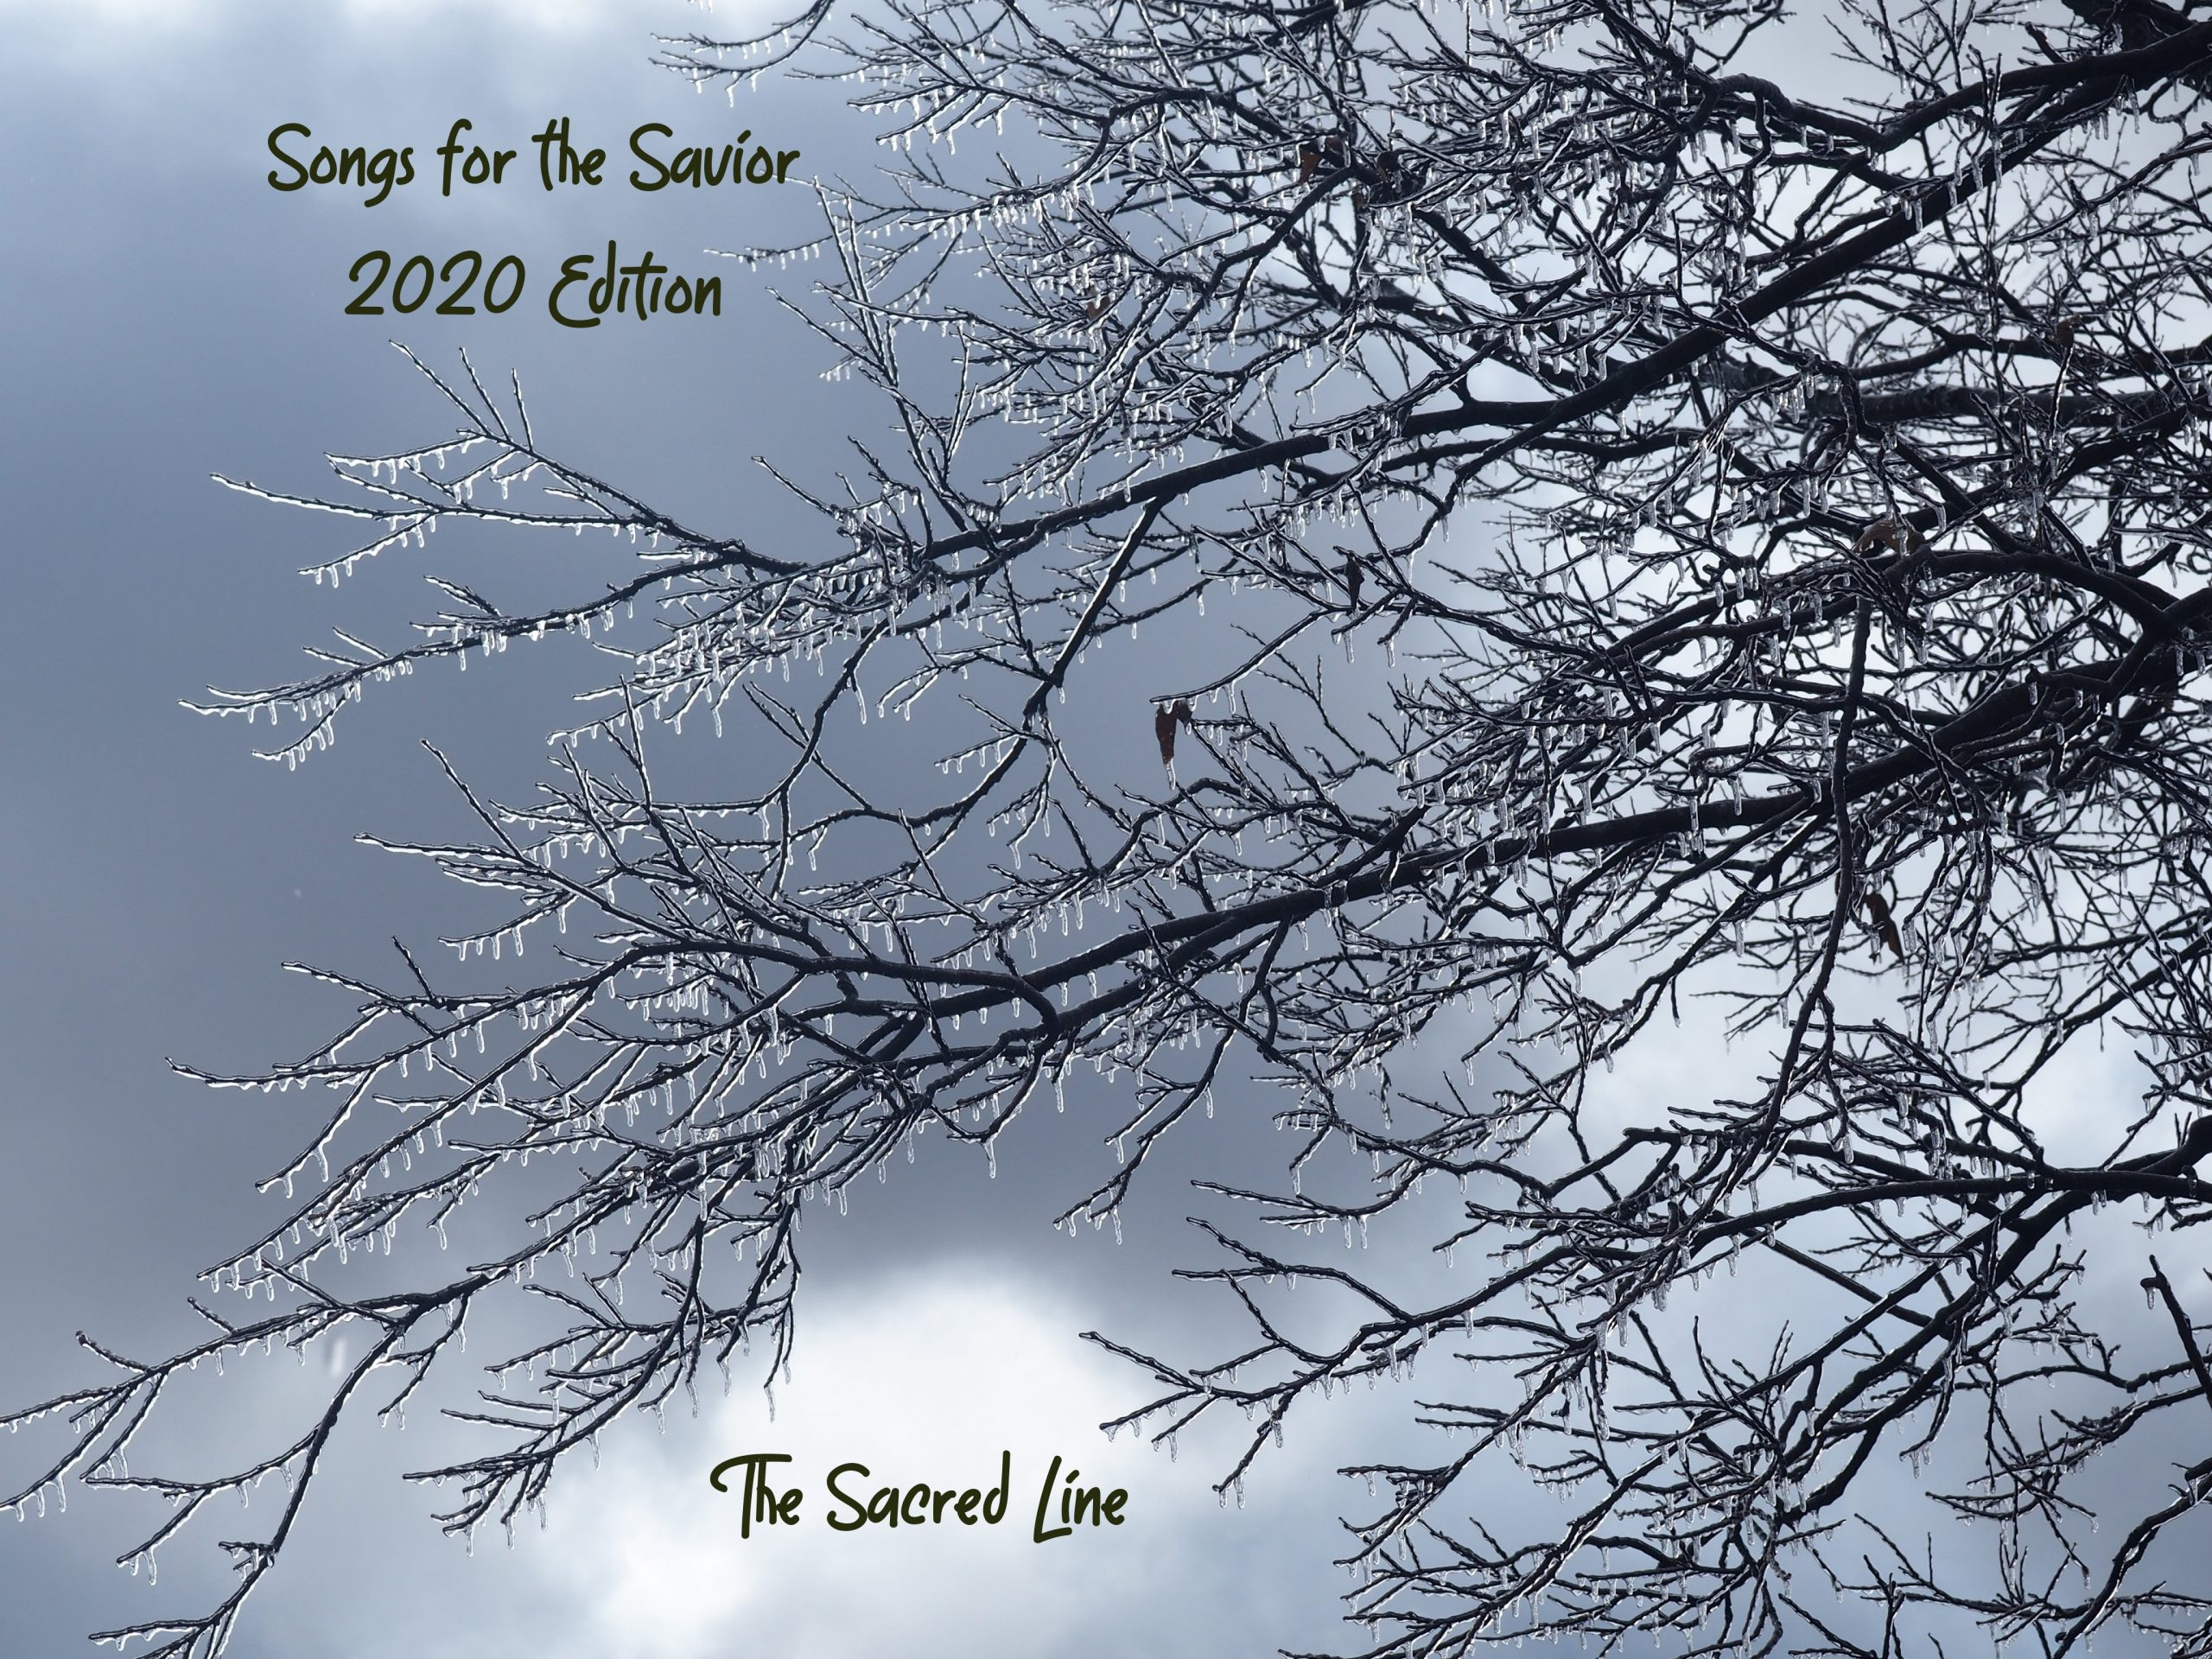 Peace Songs for the Savior